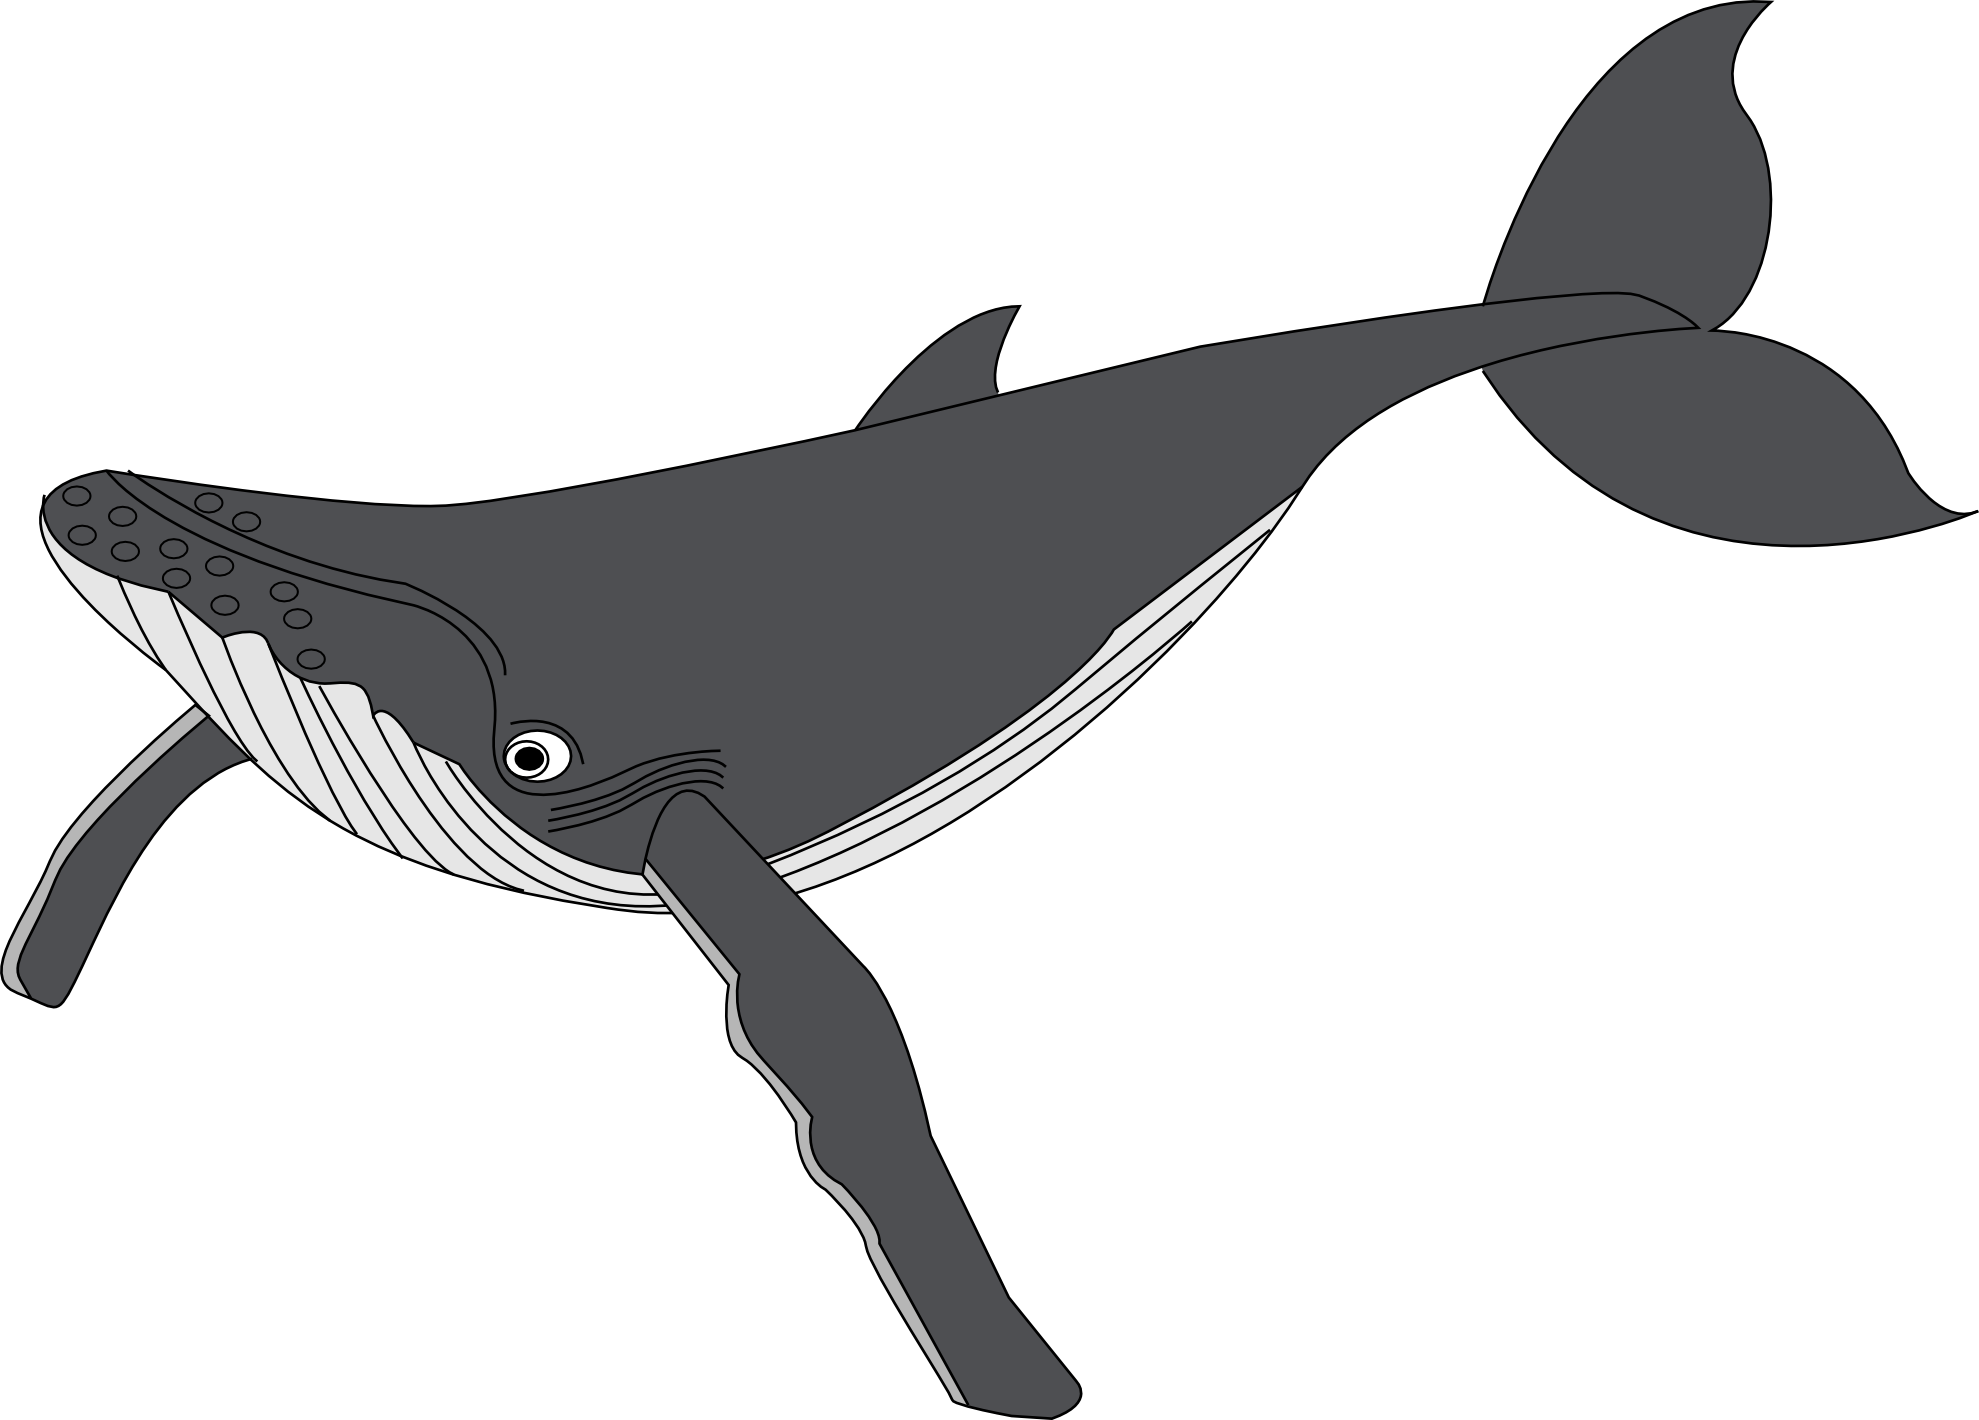 Orca whale clipart free images 2